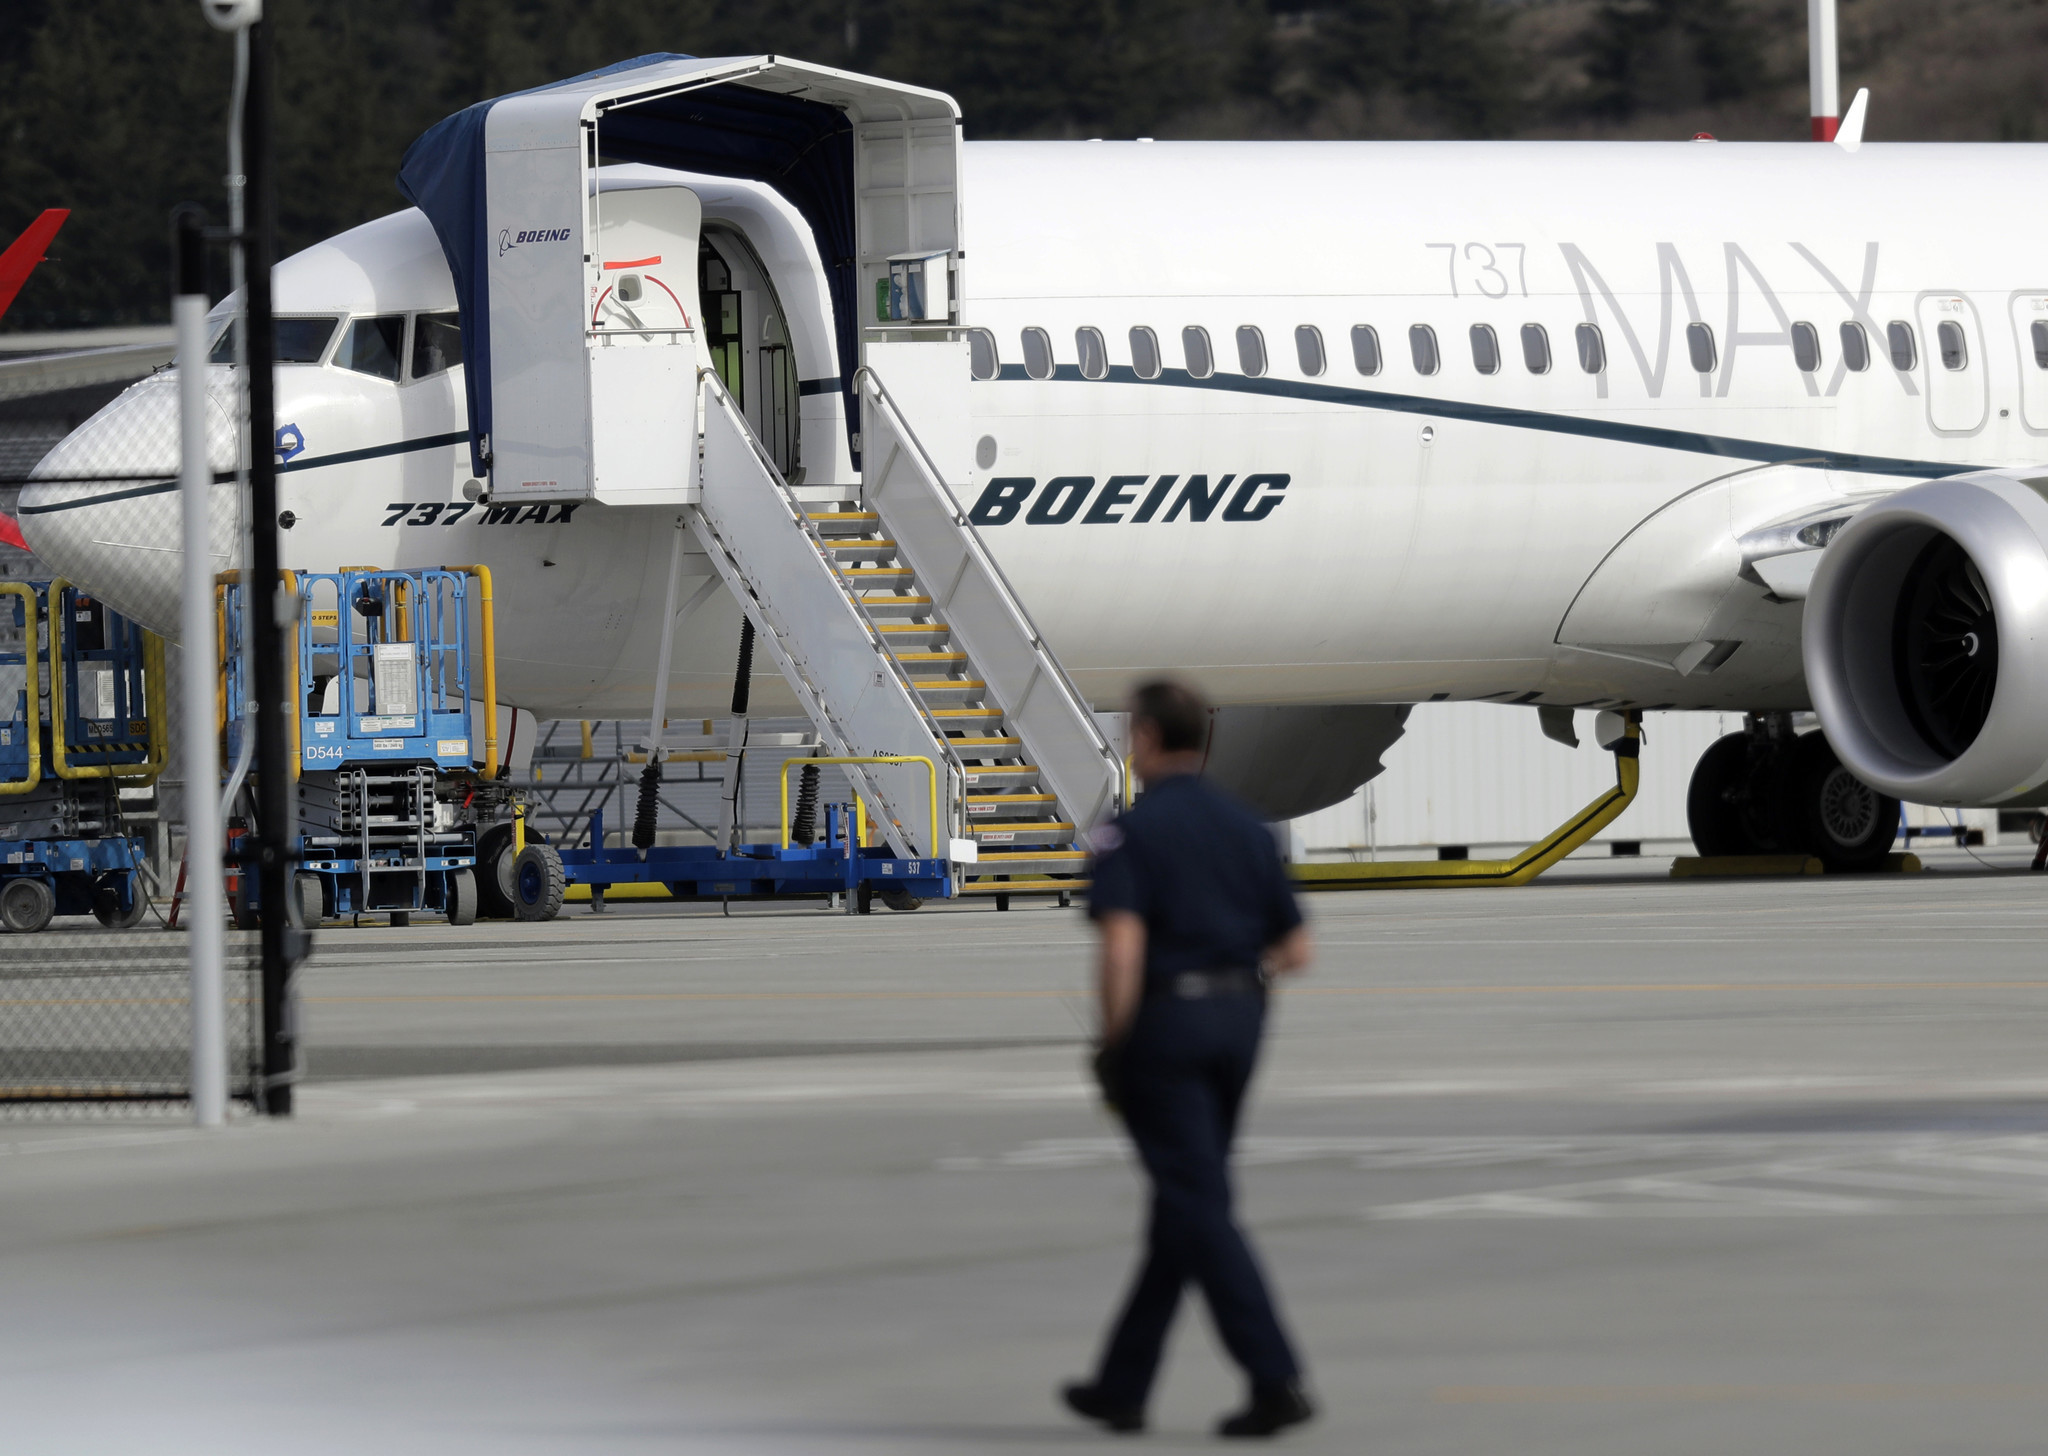 Boeing sued over claims its 737 Max 8 isn't safely designed as political woes deepen